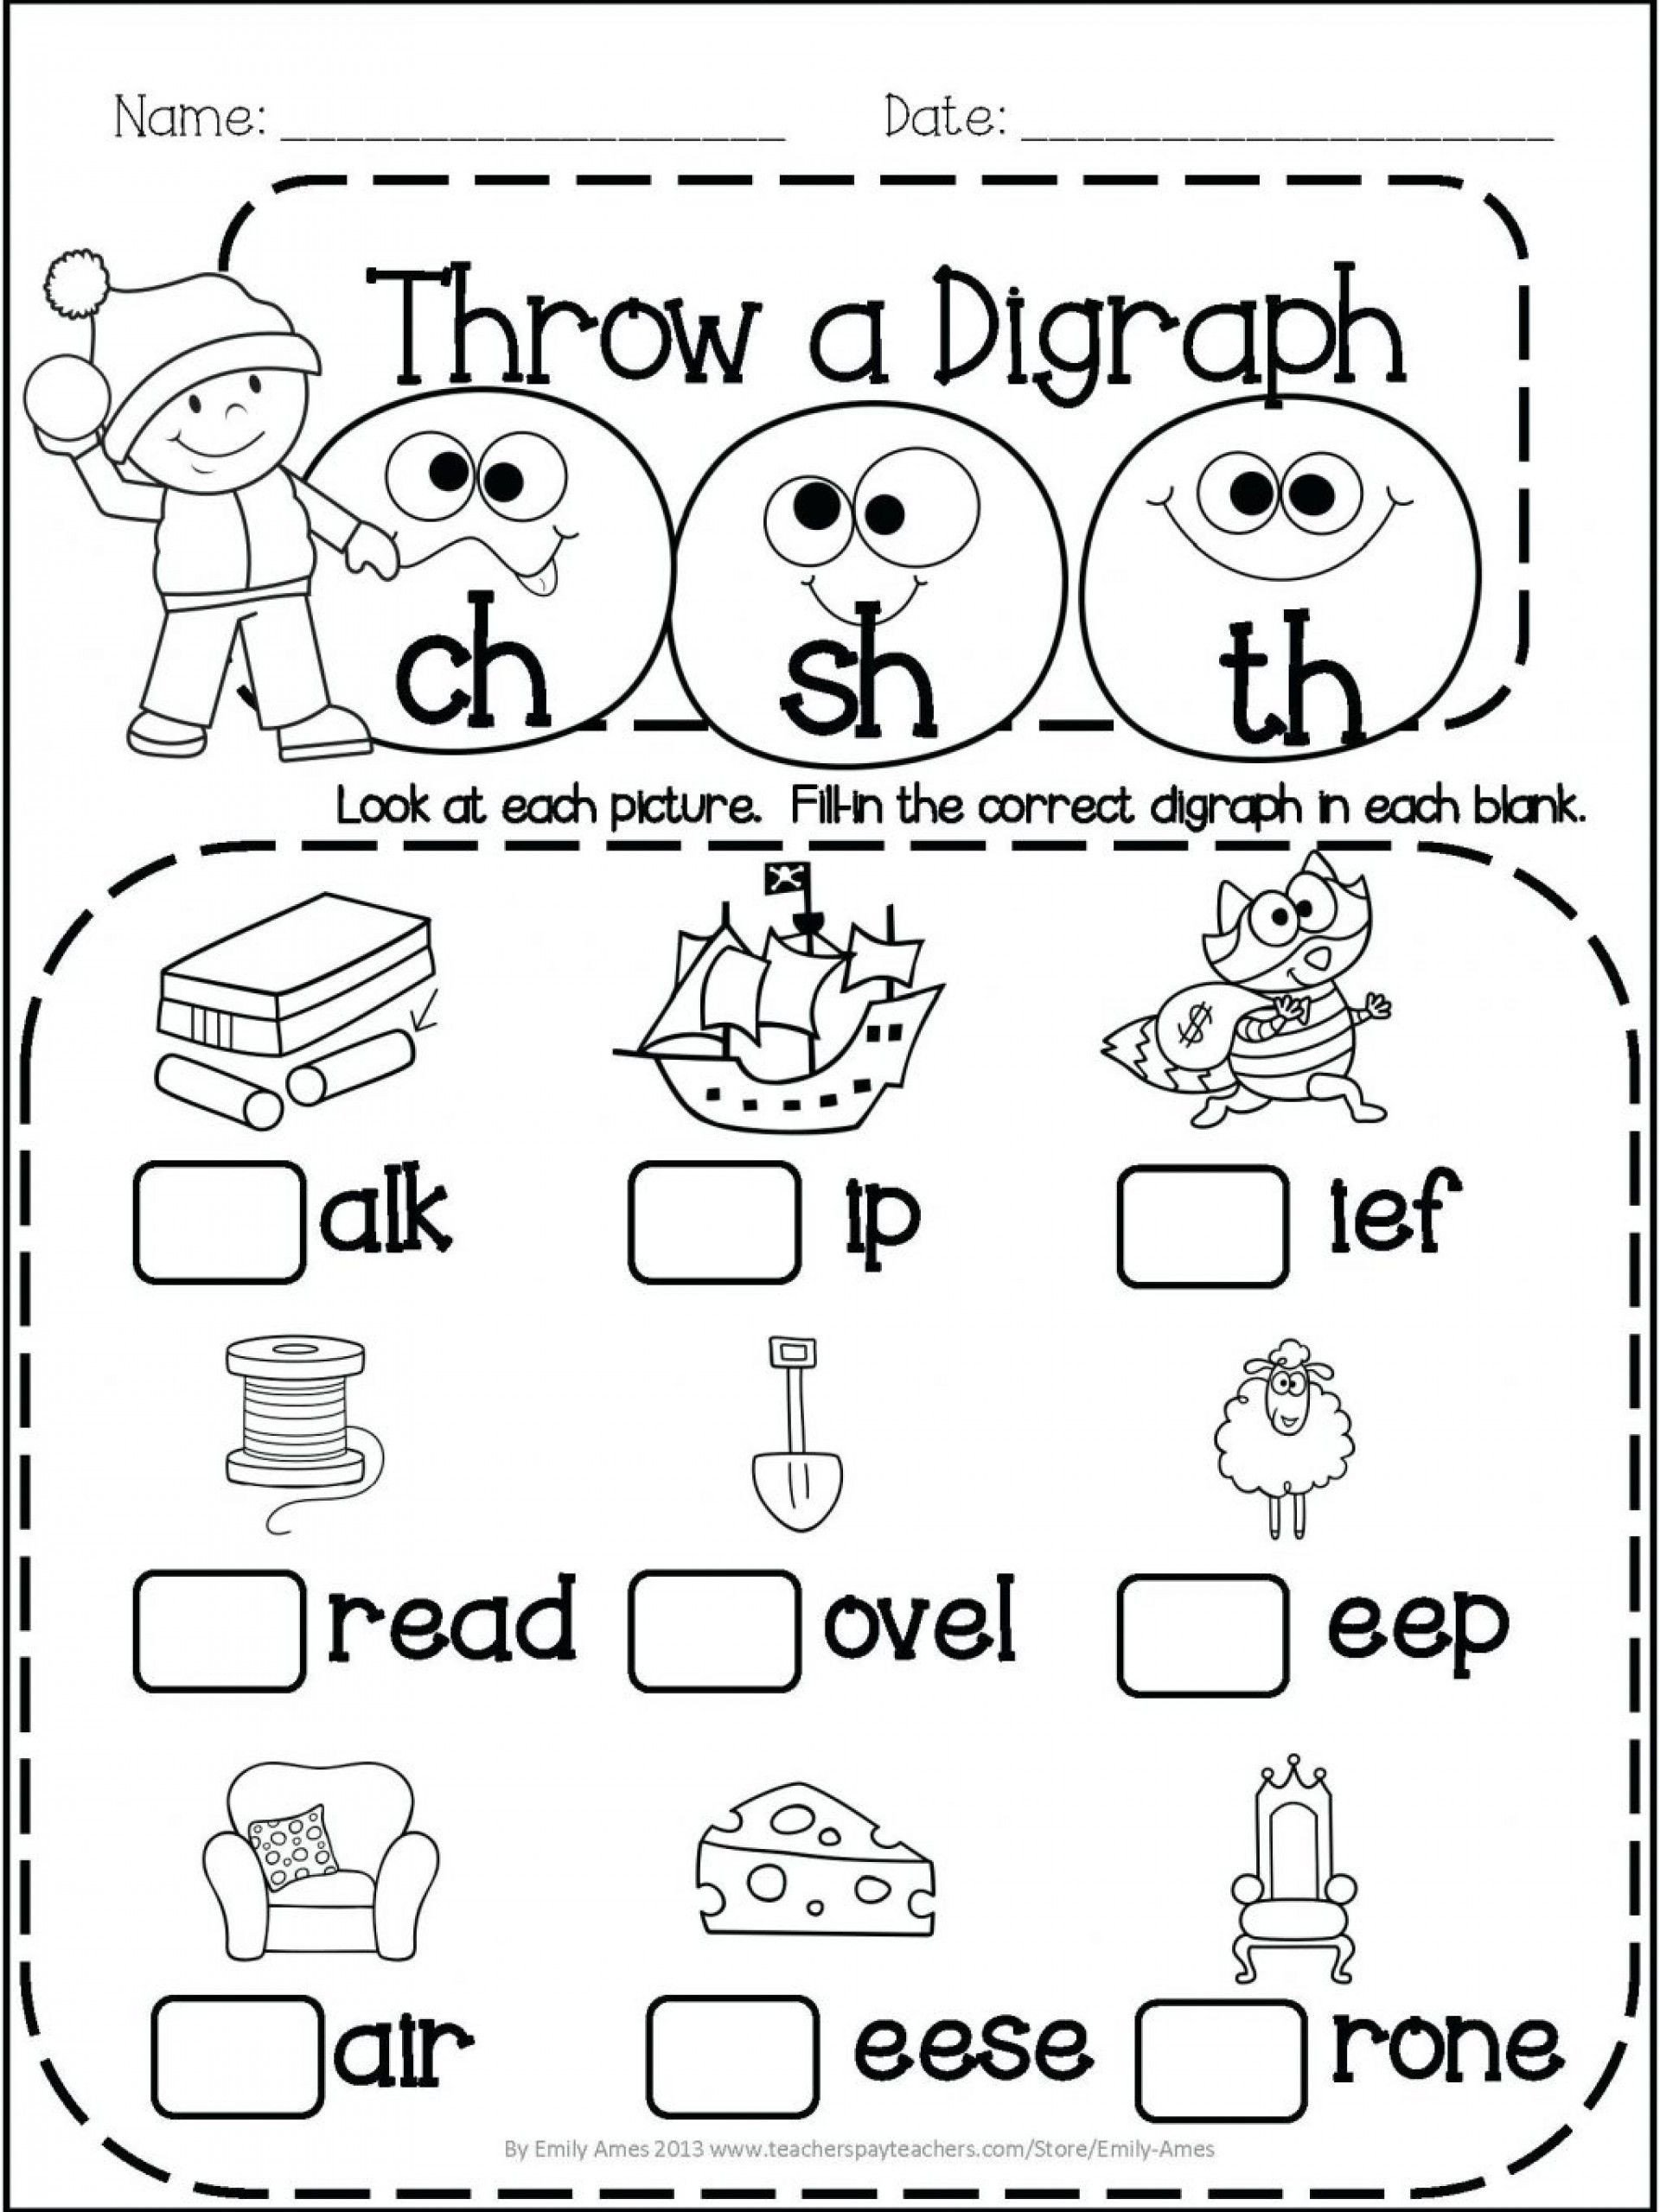 Long Vowels Worksheets Kindergarten 4 Worksheet Free Preschool Kindergarten Worksheets Vowels